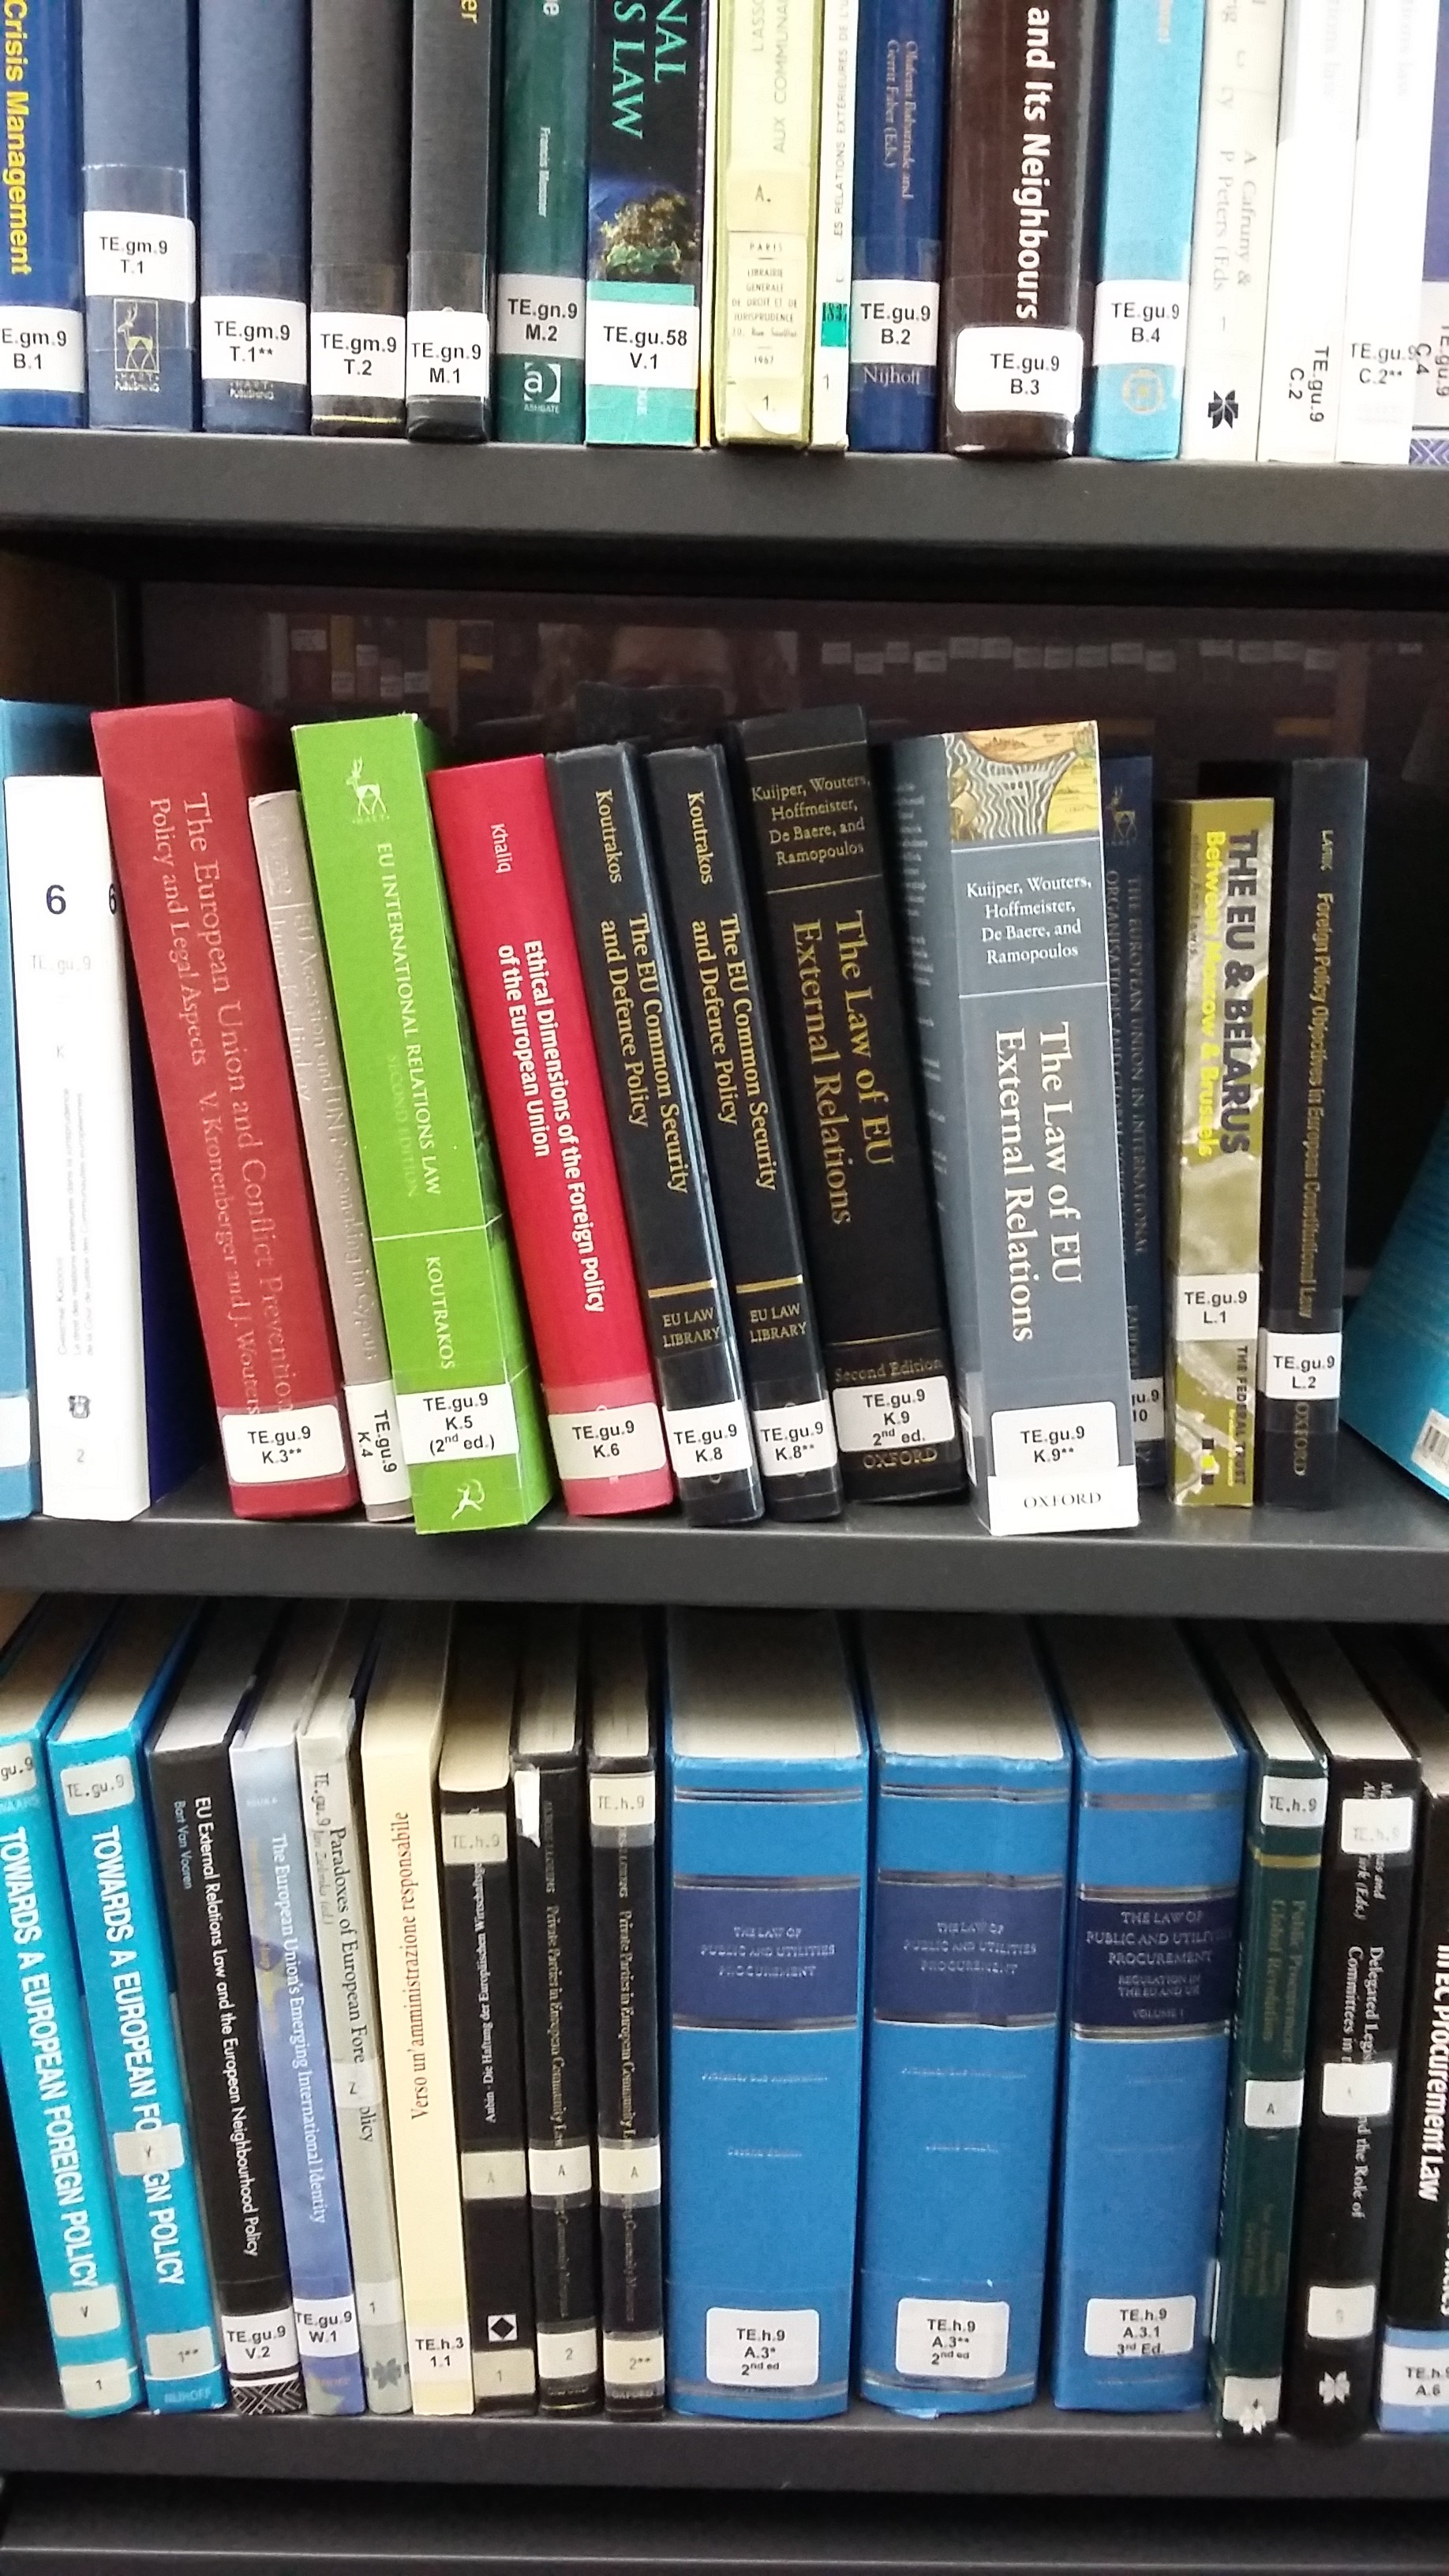 Photo of colourful books on shelves in the EU law section of the Squire Law Library.